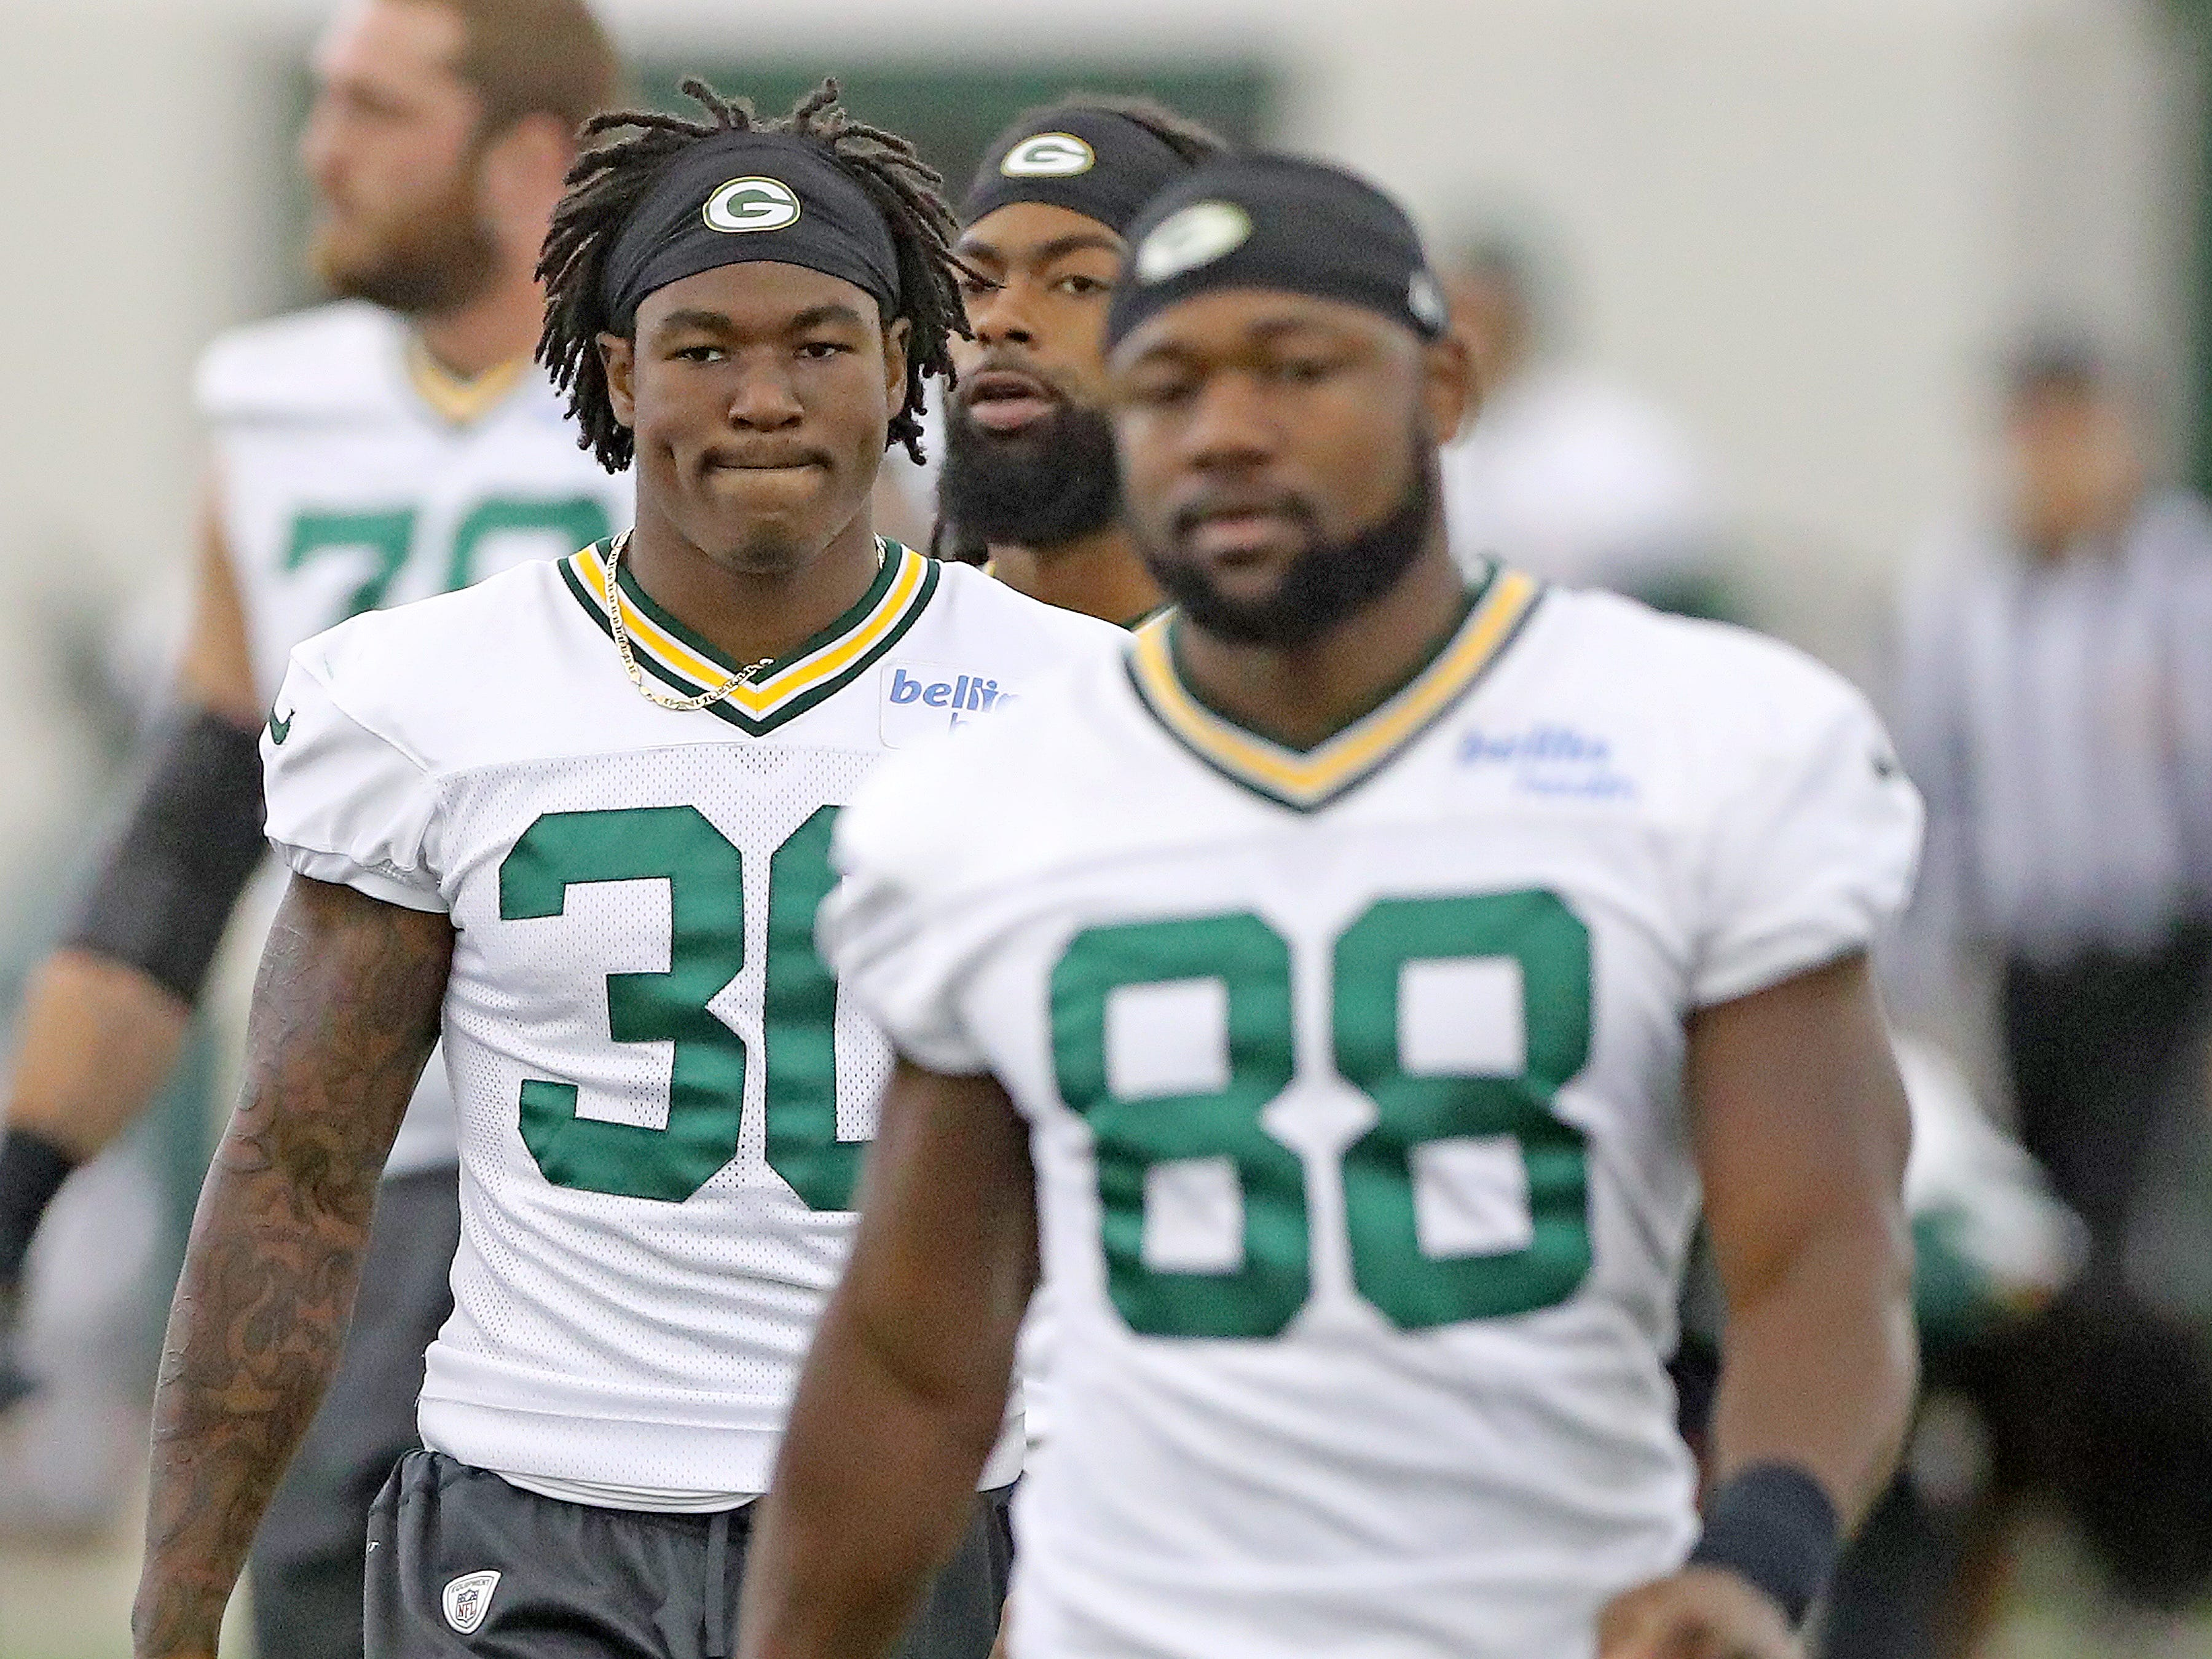 Green Bay Packers running back Jamaal Williams (30) during practice inside the Hutson Center Thursday,October 11, 2018 in Ashwaubenon, Wis.